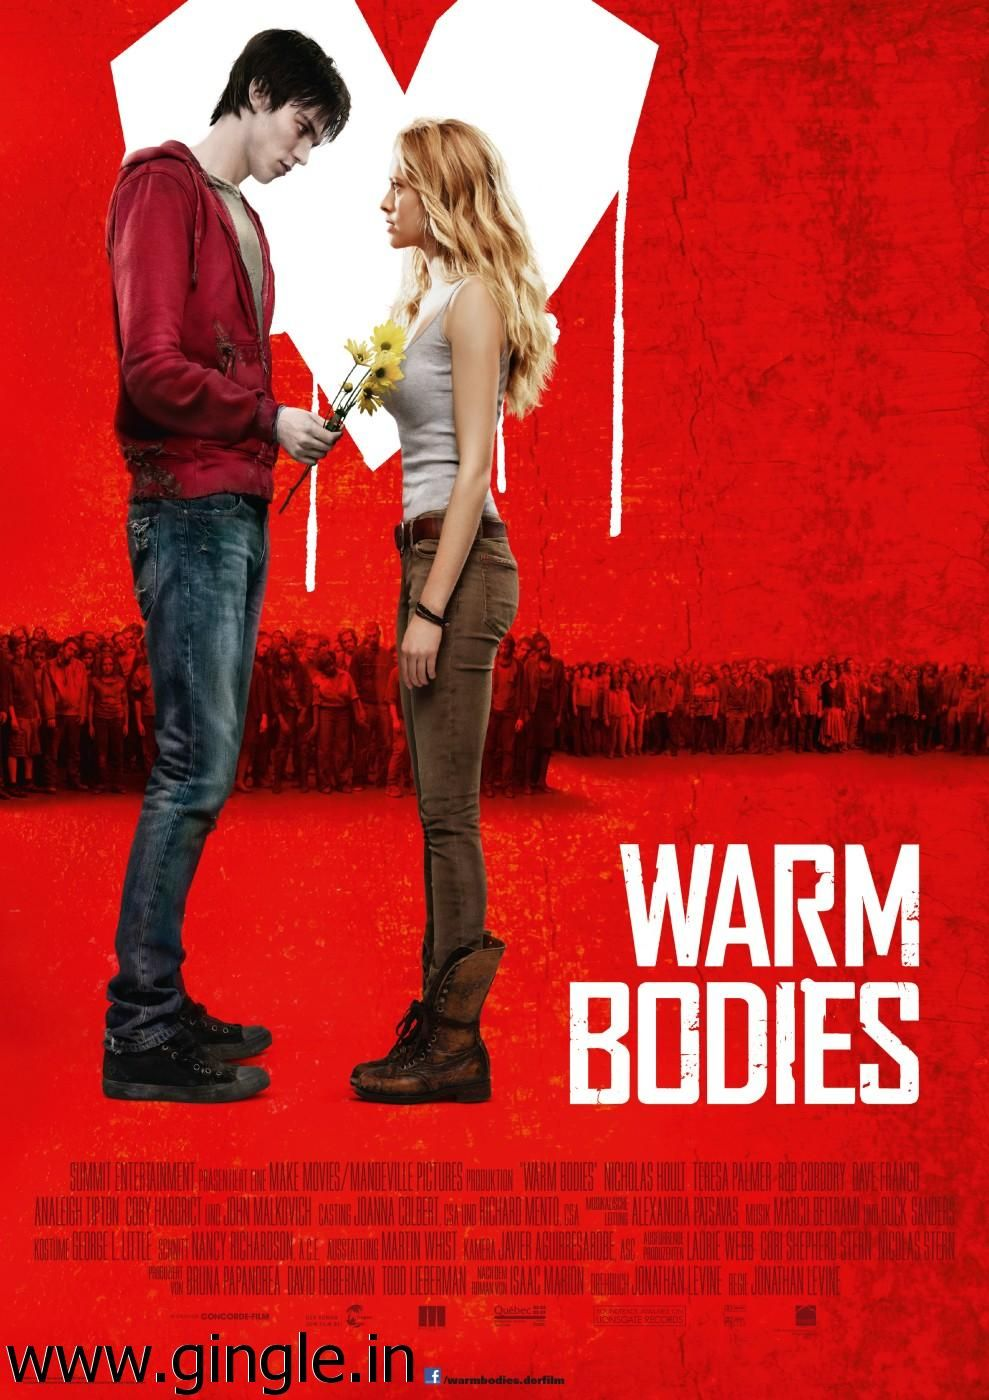 warm bodies soundtrack download